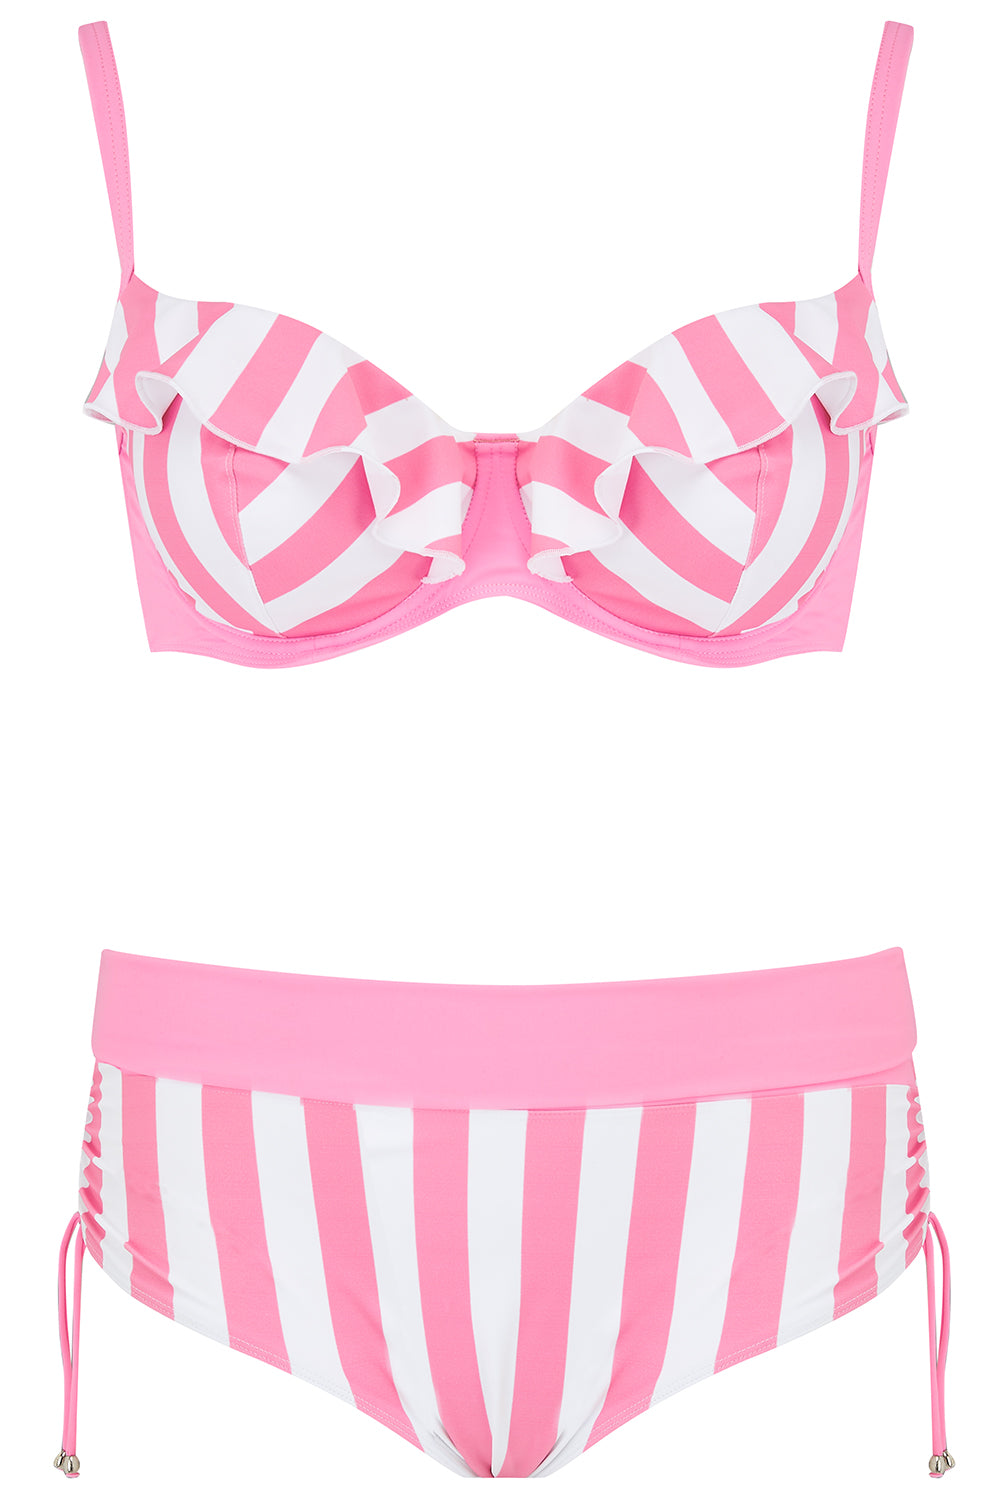 Pink Candy Stripe Plus Size Frilly Bikini Top